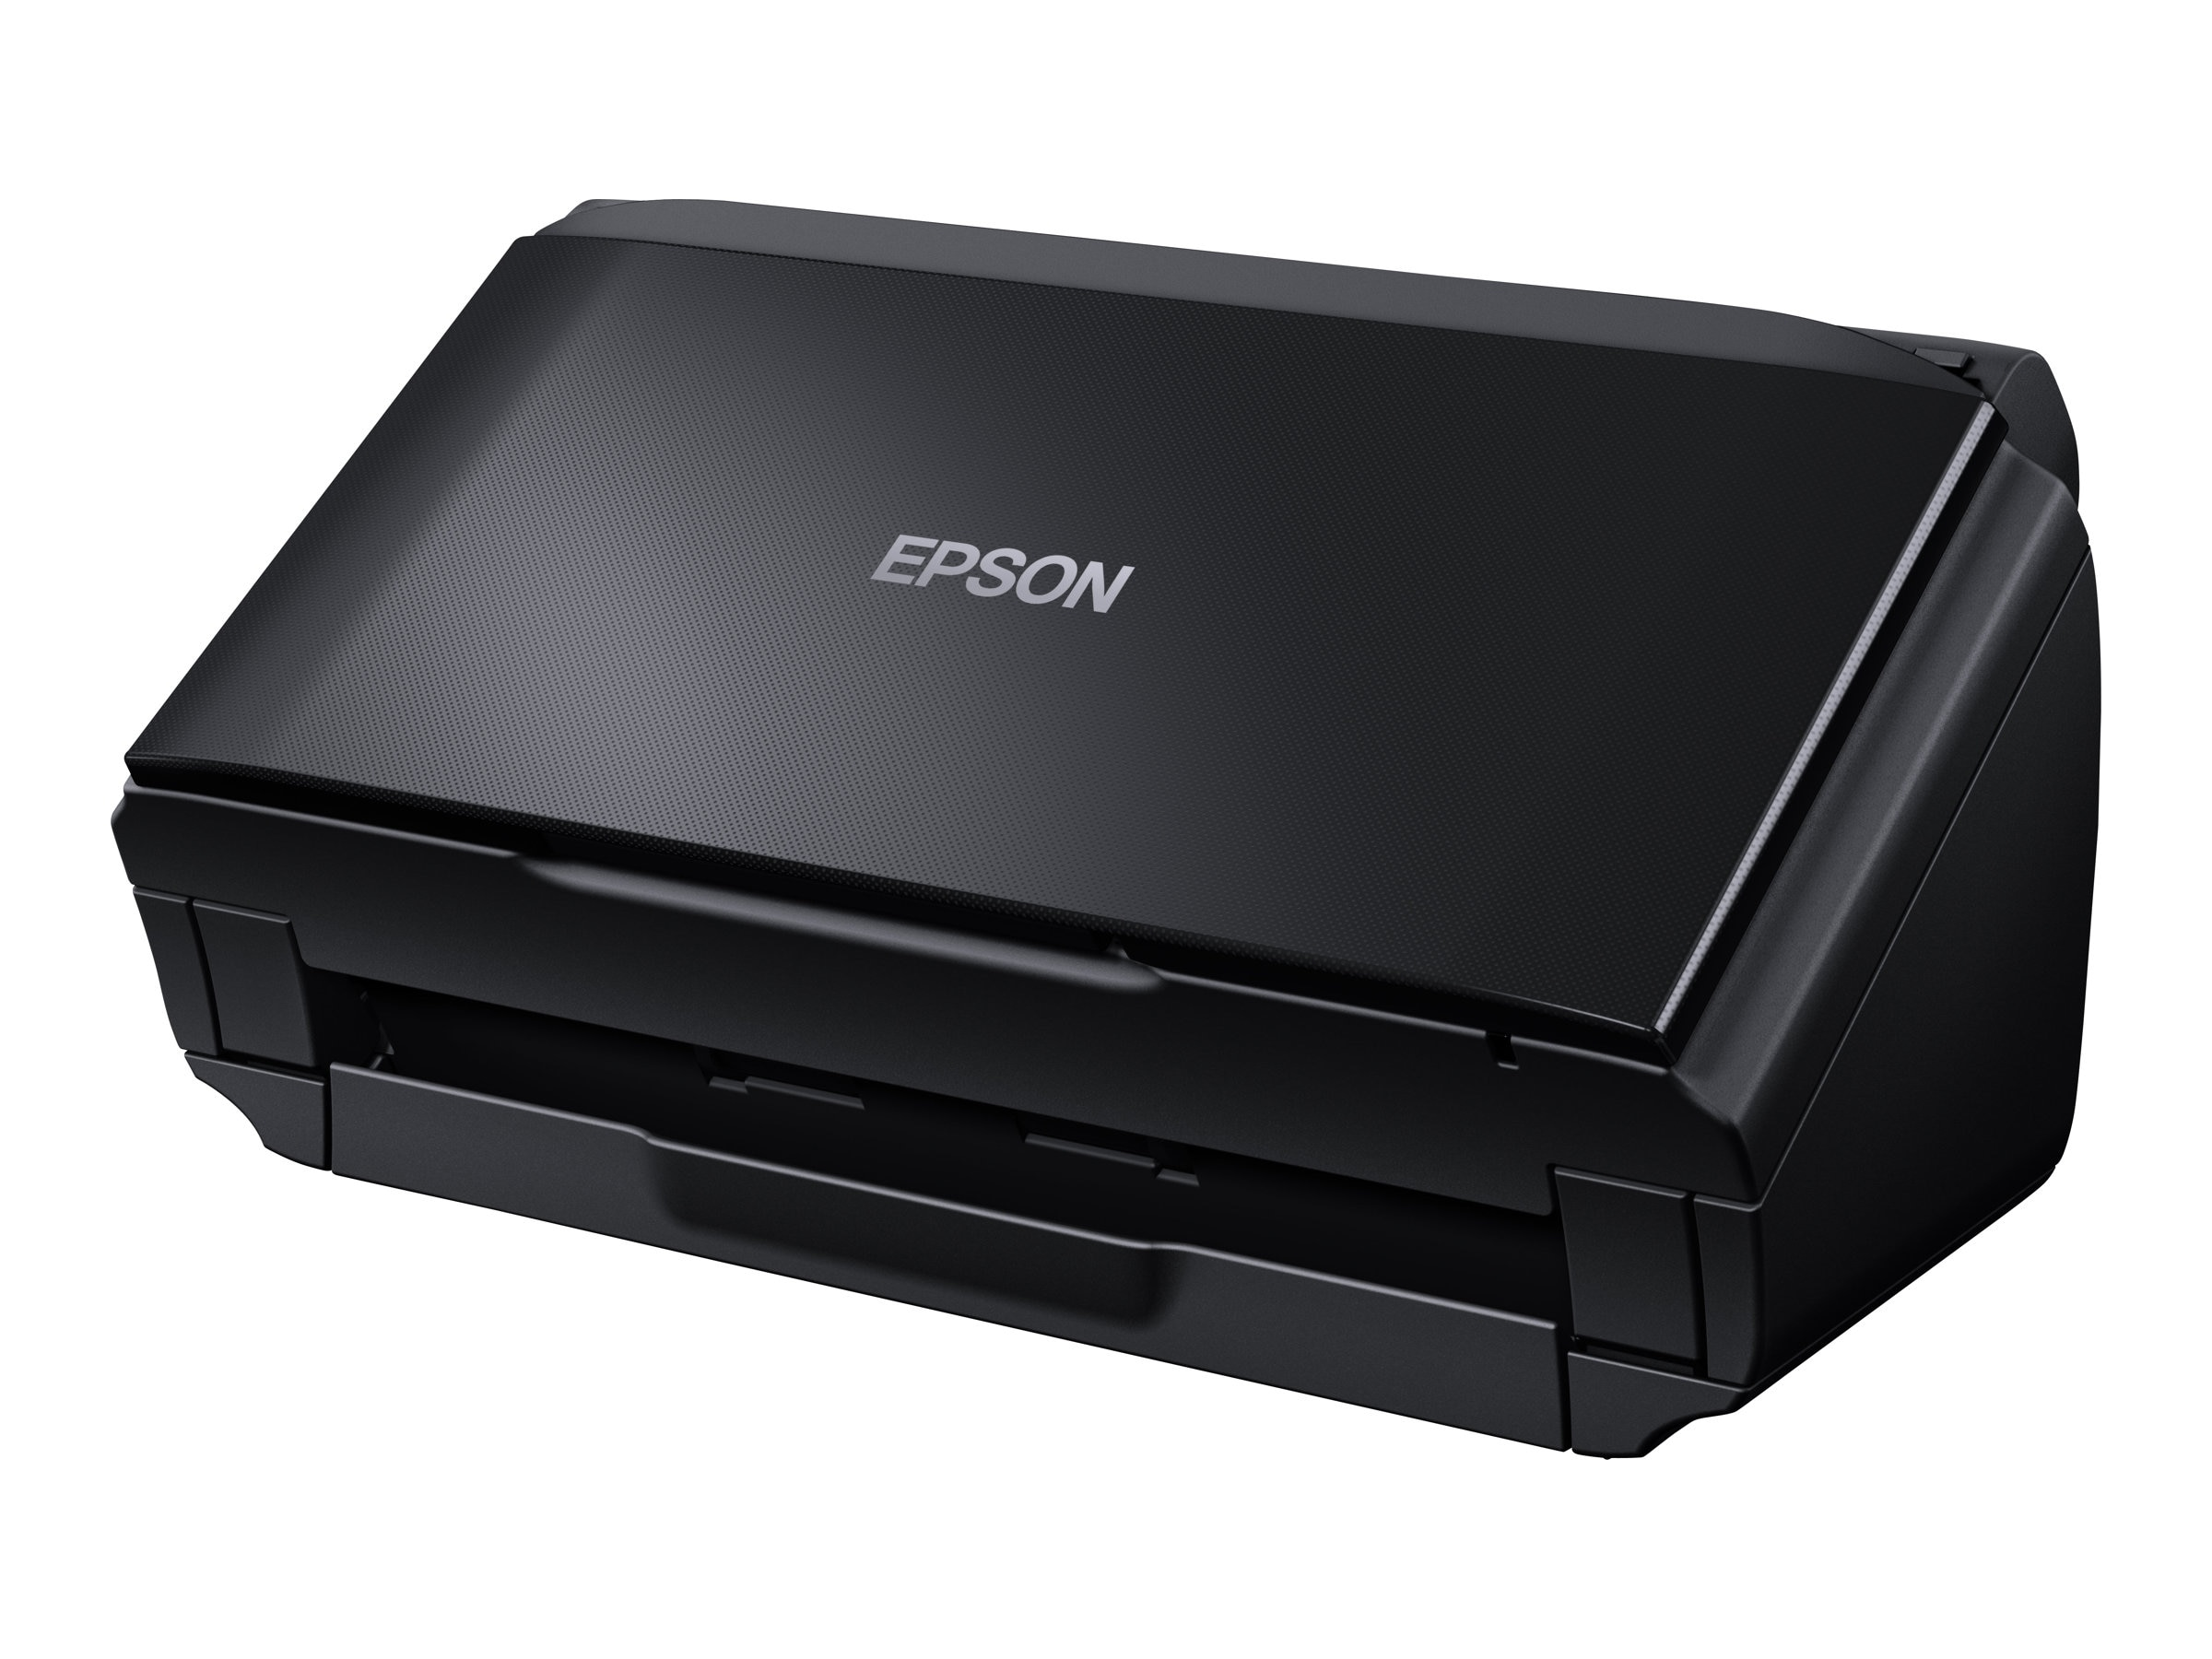 Epson WorkForce DS-510 26ppm 50-page ADF Document Scanner